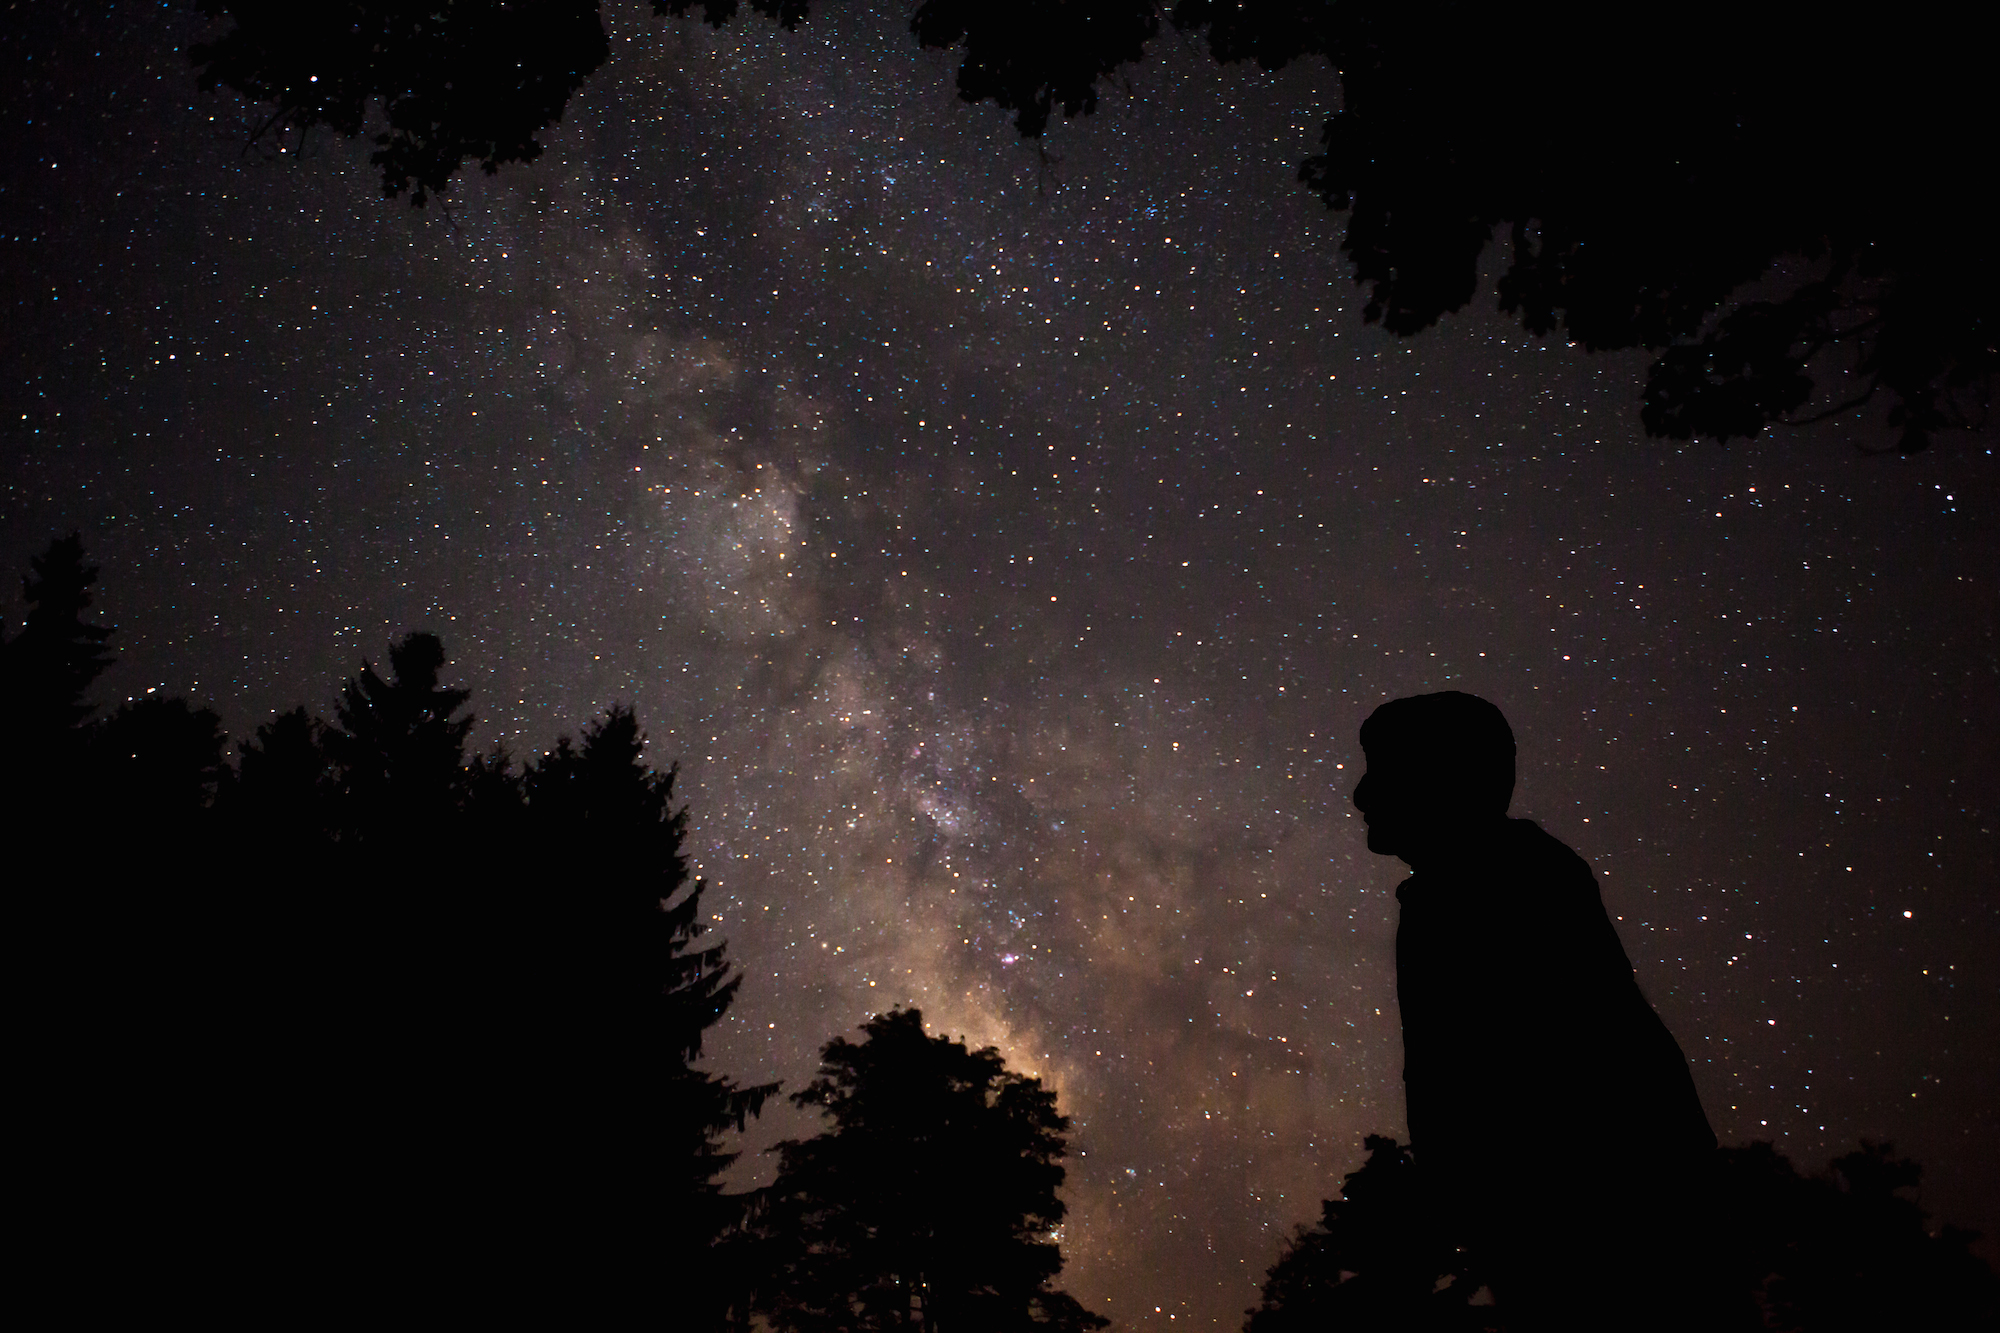 The stars are disappearing before our eyes. So I went to find the darkest skies left.